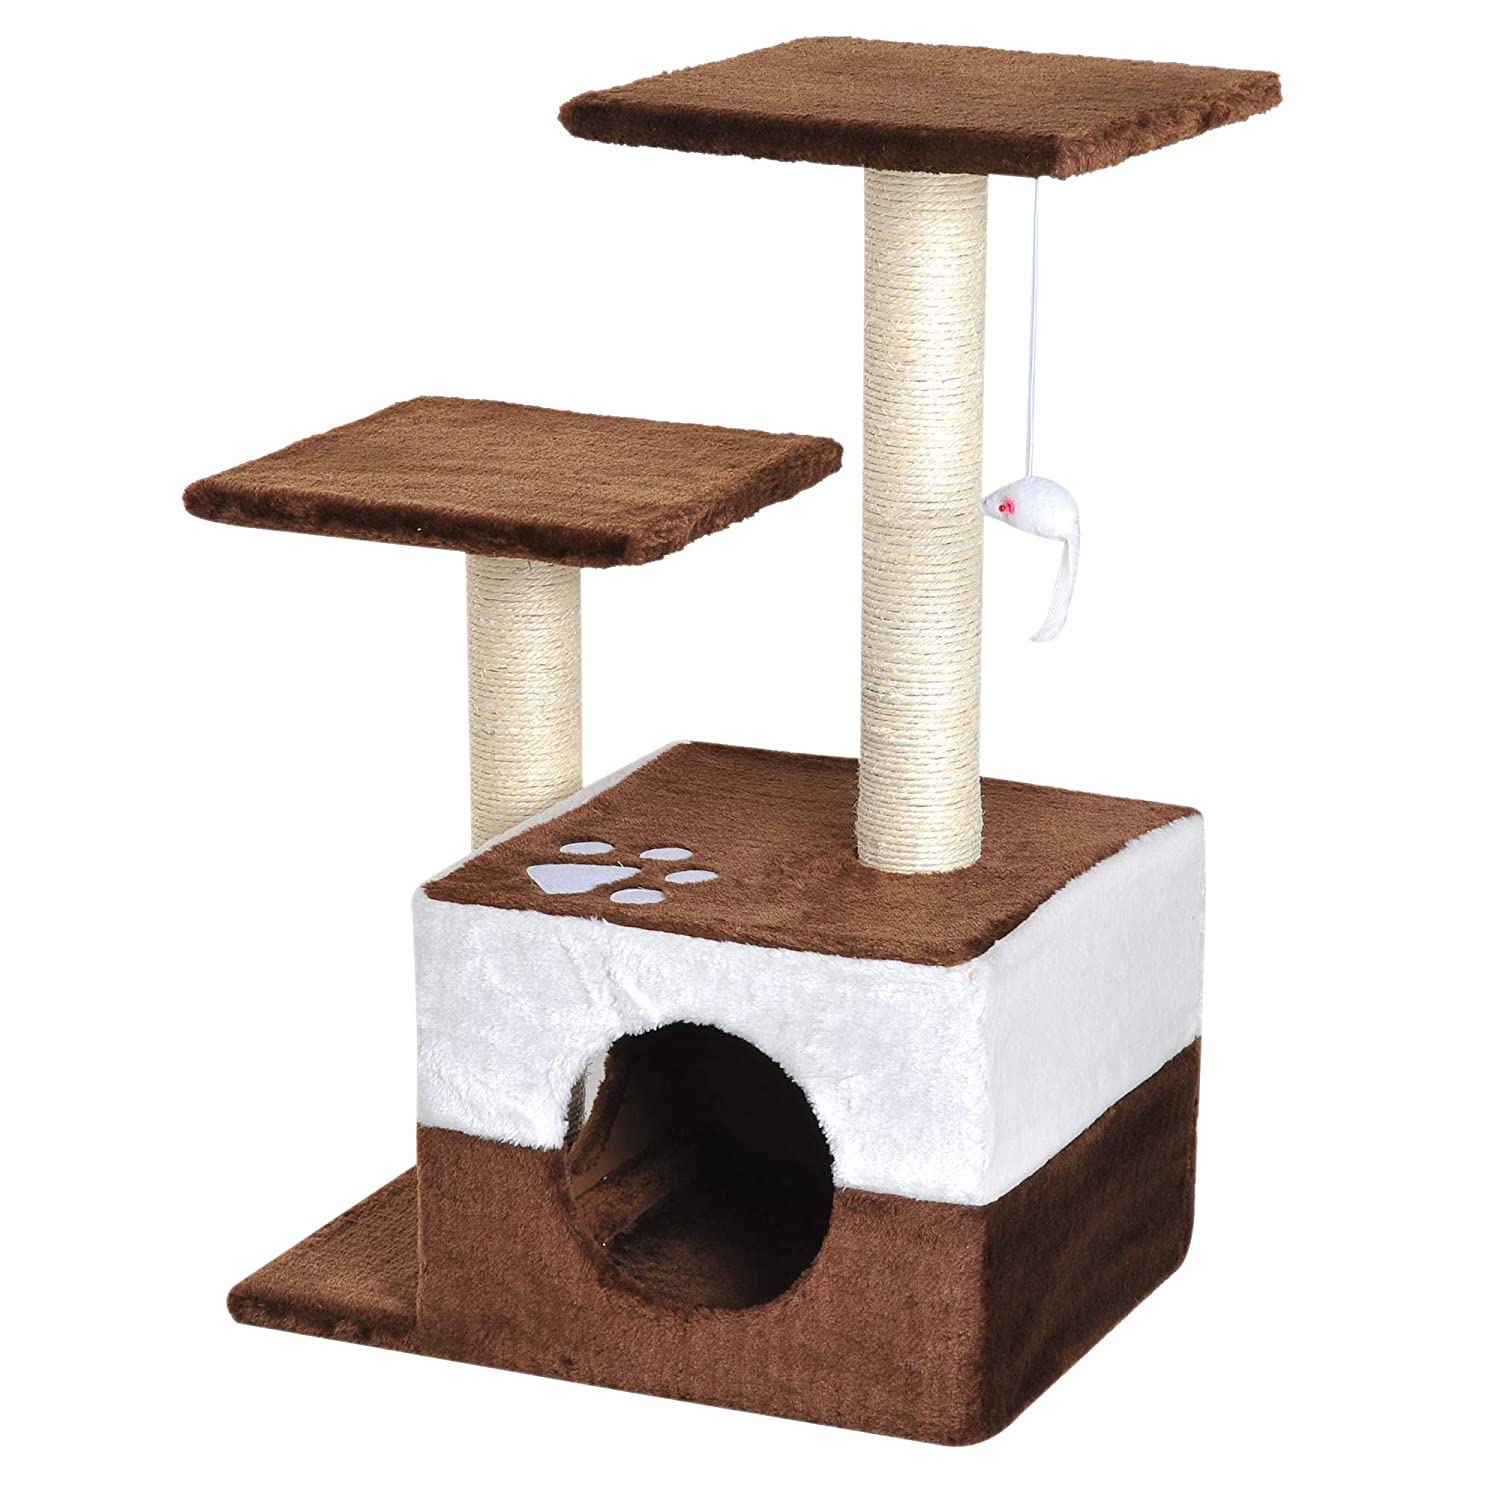 PawHut 28' Cat Tree Scratcher Kitten Condo Play House Activity Center w/Hanging Toy Brown Aosom Canada